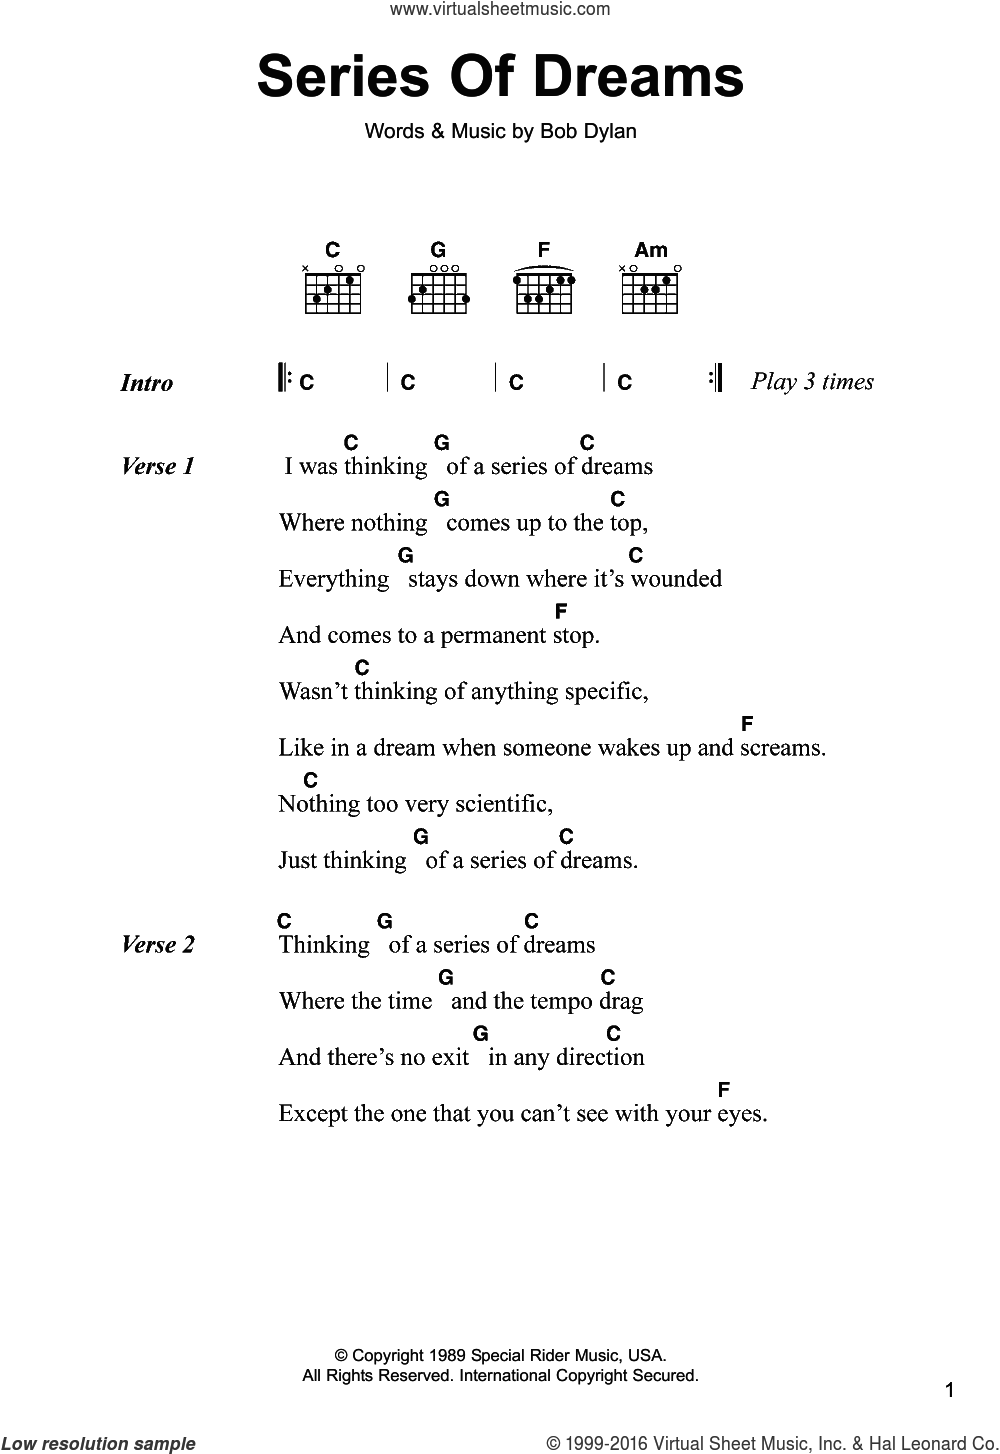 Series Of Dreams sheet music for guitar (chords) by Bob Dylan, intermediate skill level